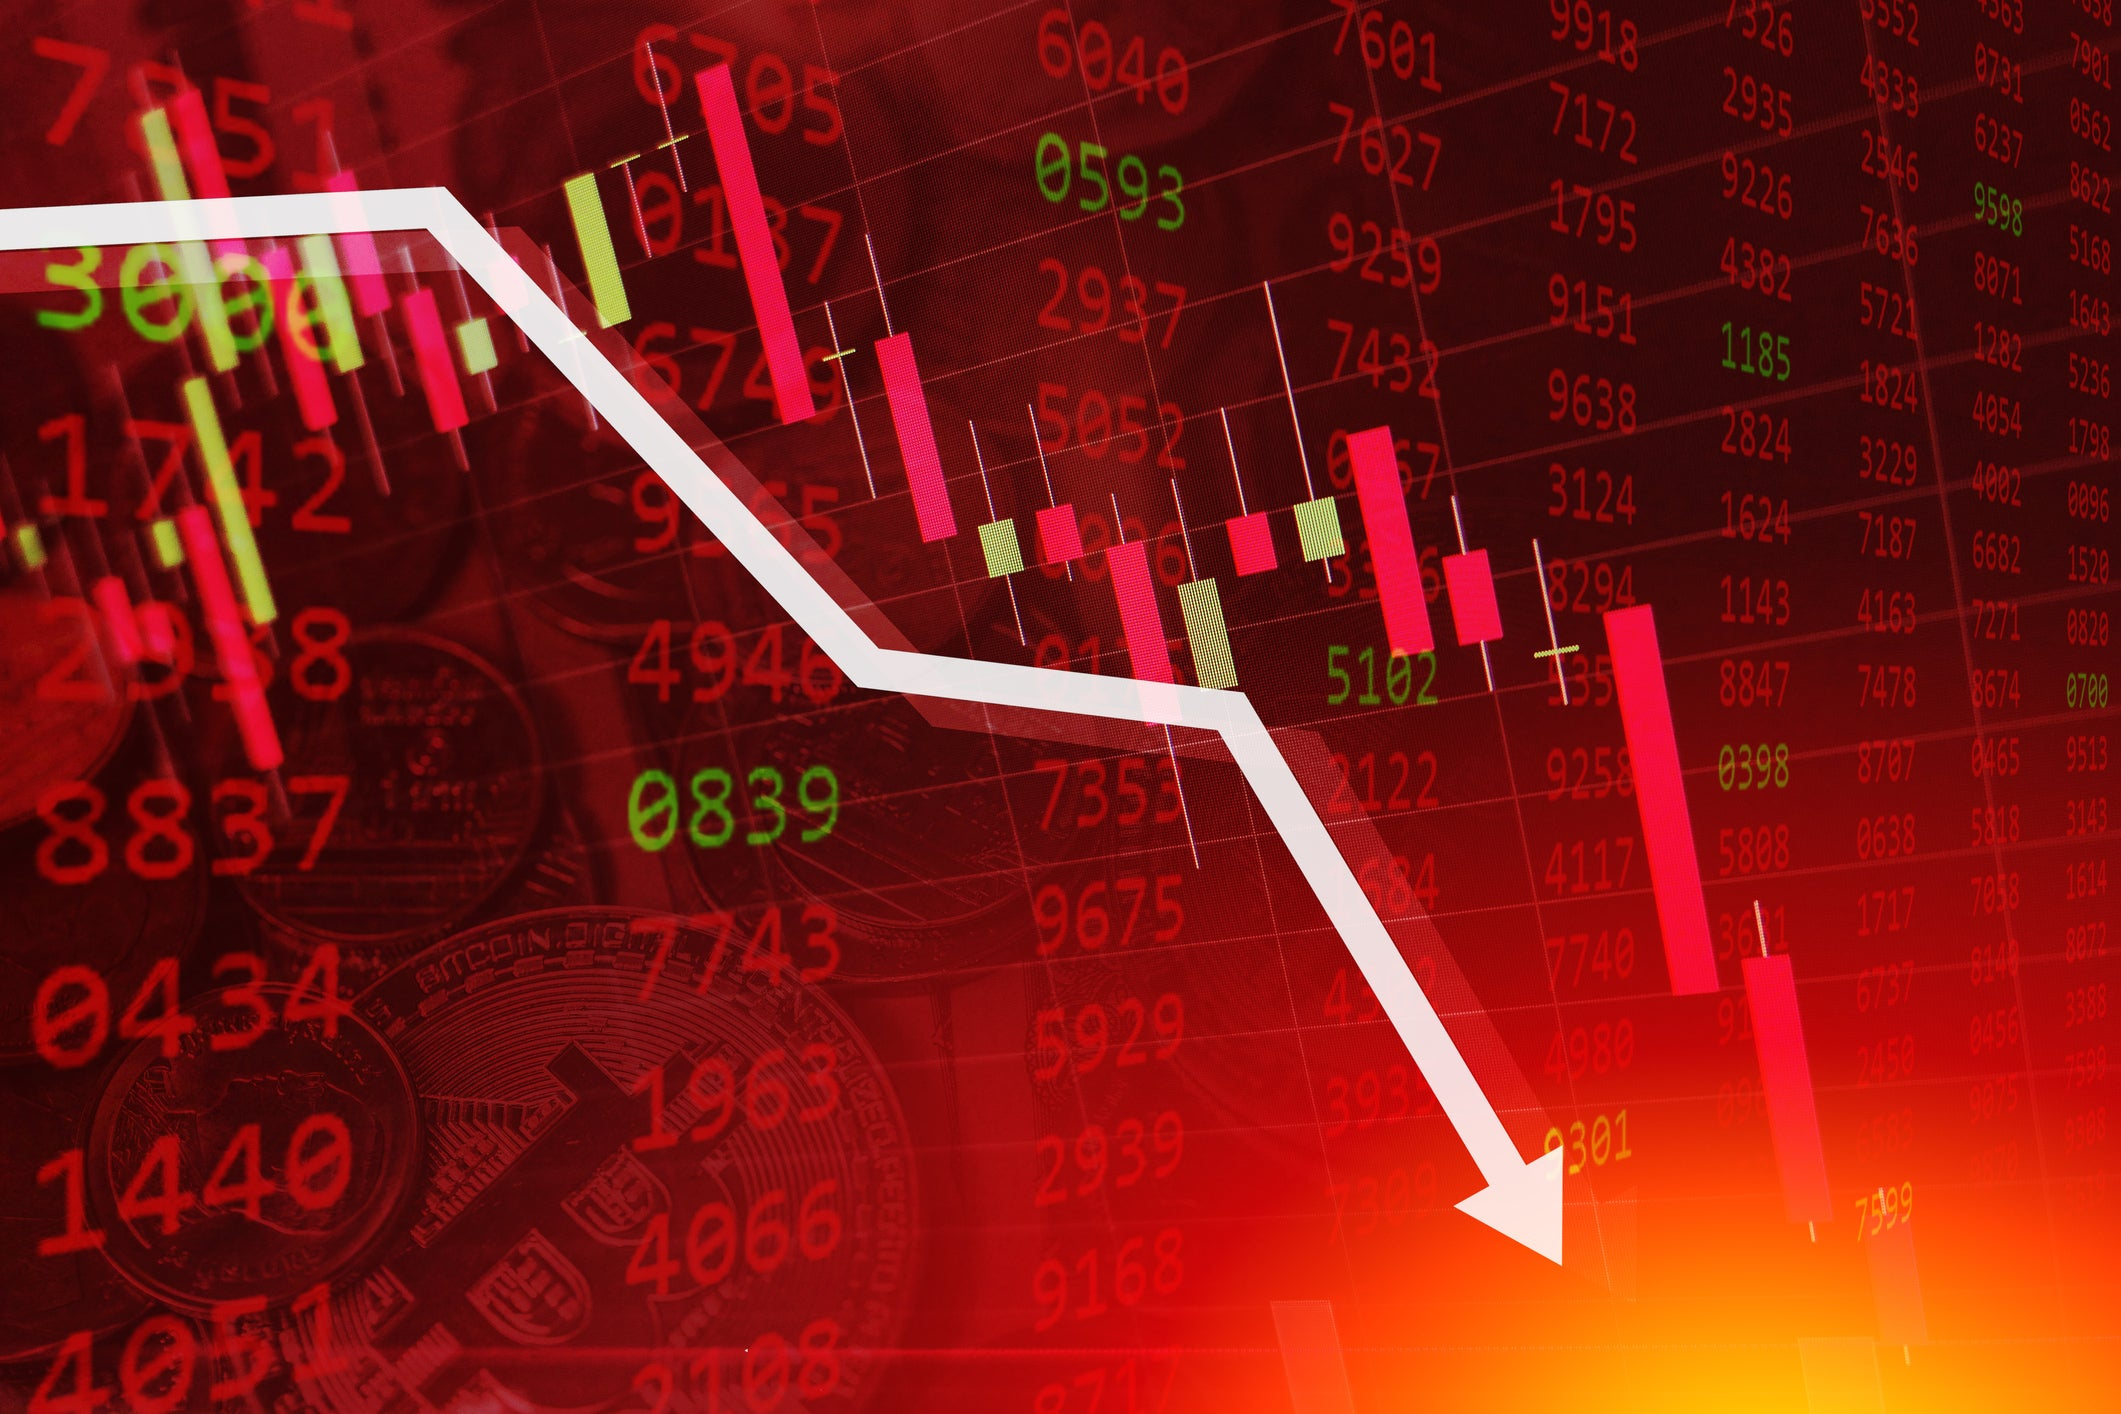 3 Top Oversold Stocks to Buy in the Coronavirus Market Crash | The Motley Fool